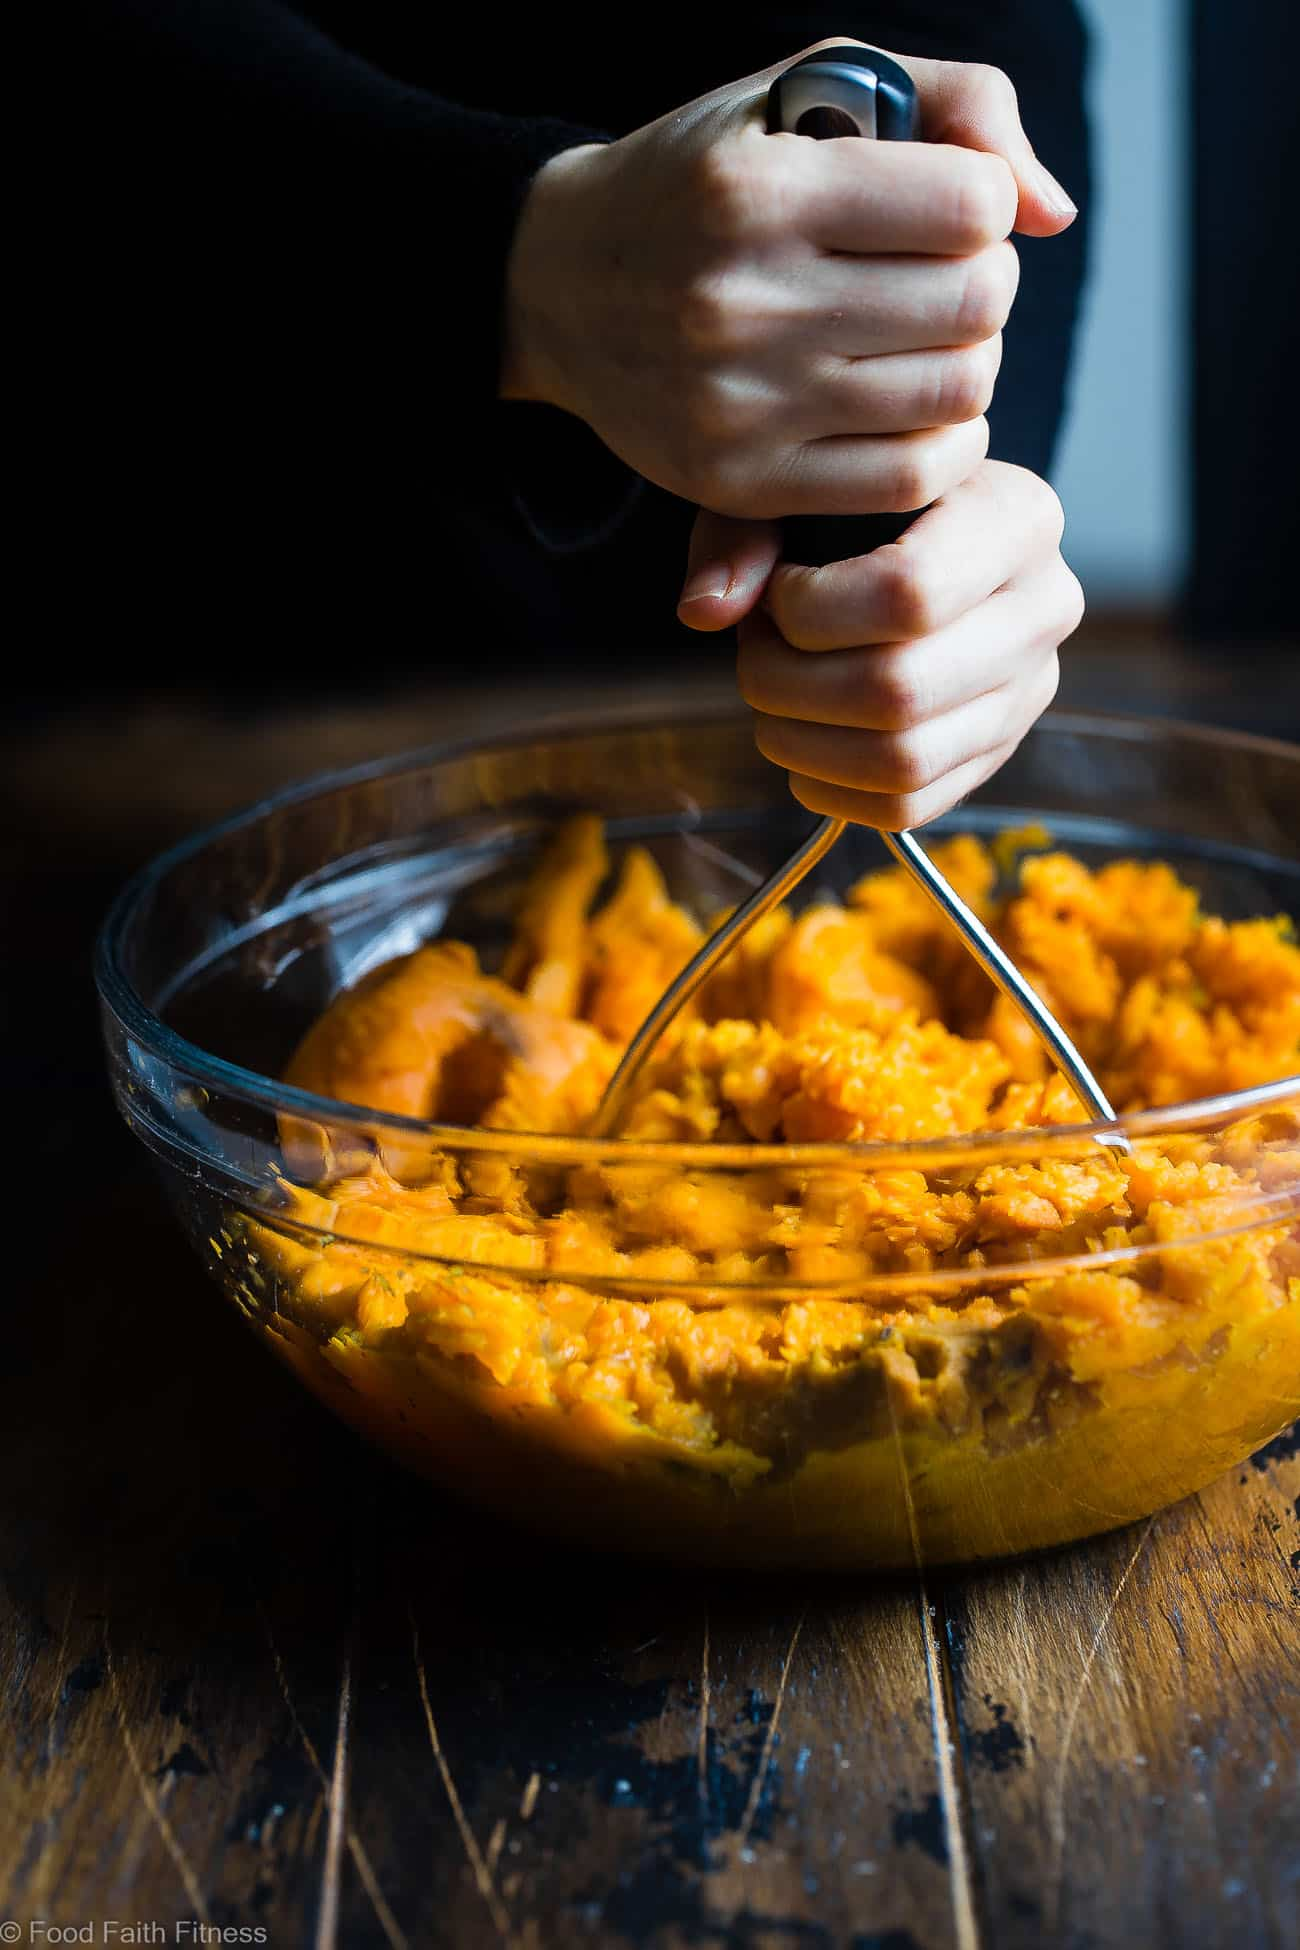 Curried Savory Vegan Healthy Mashed Sweet Potatoes - This healthy sweet potato mash is a sweet and spicy spin on a holiday classic!  So creamy you will never believe they are dairy, grain and gluten free and paleo/vegan/whole30 compliant! | Foodfaithfitness.com | @FoodFaithFit